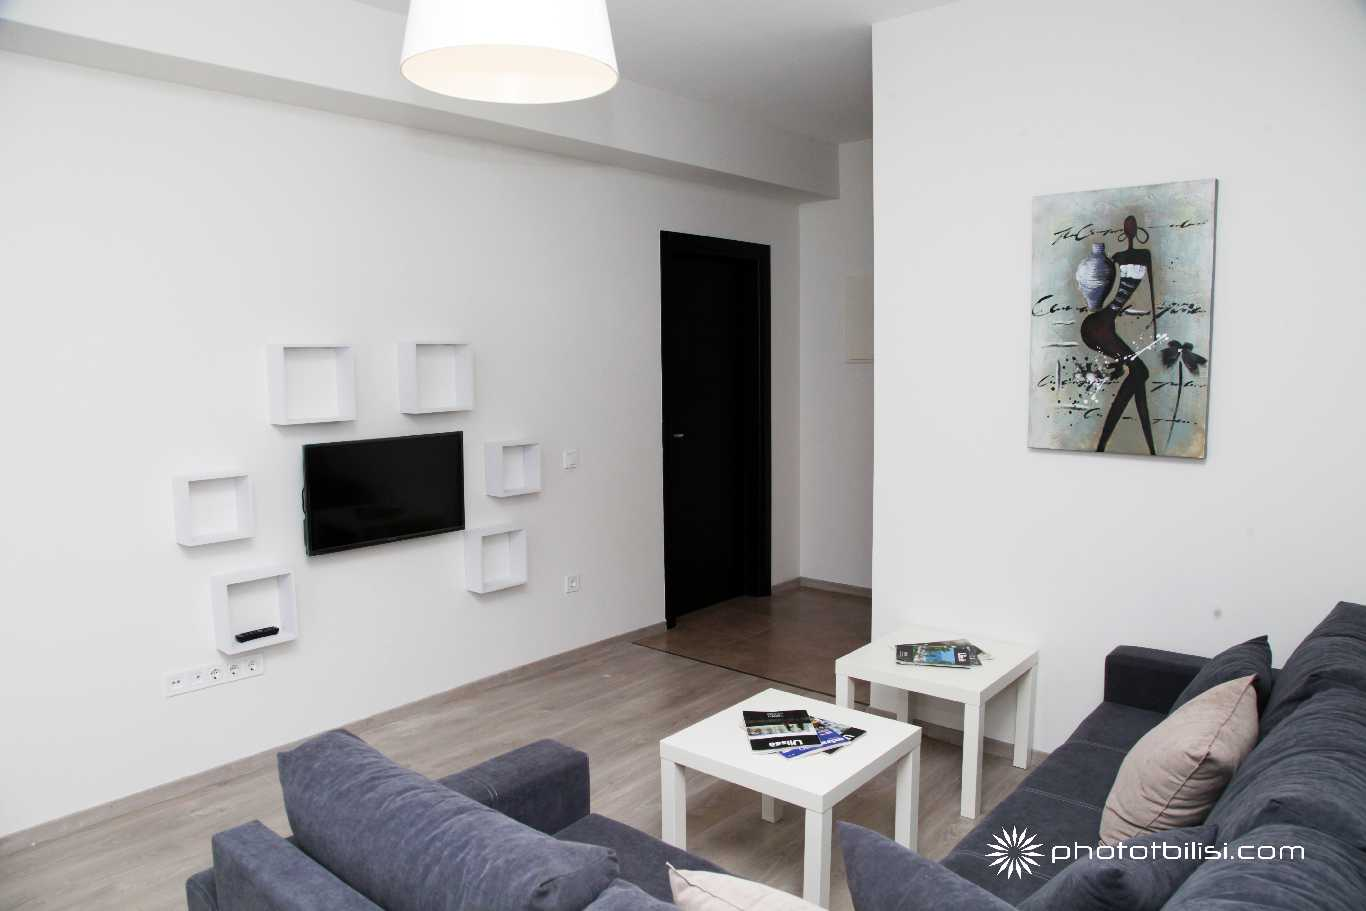 Apartment-for-rent-Tbilisi-M2-IMG_1052